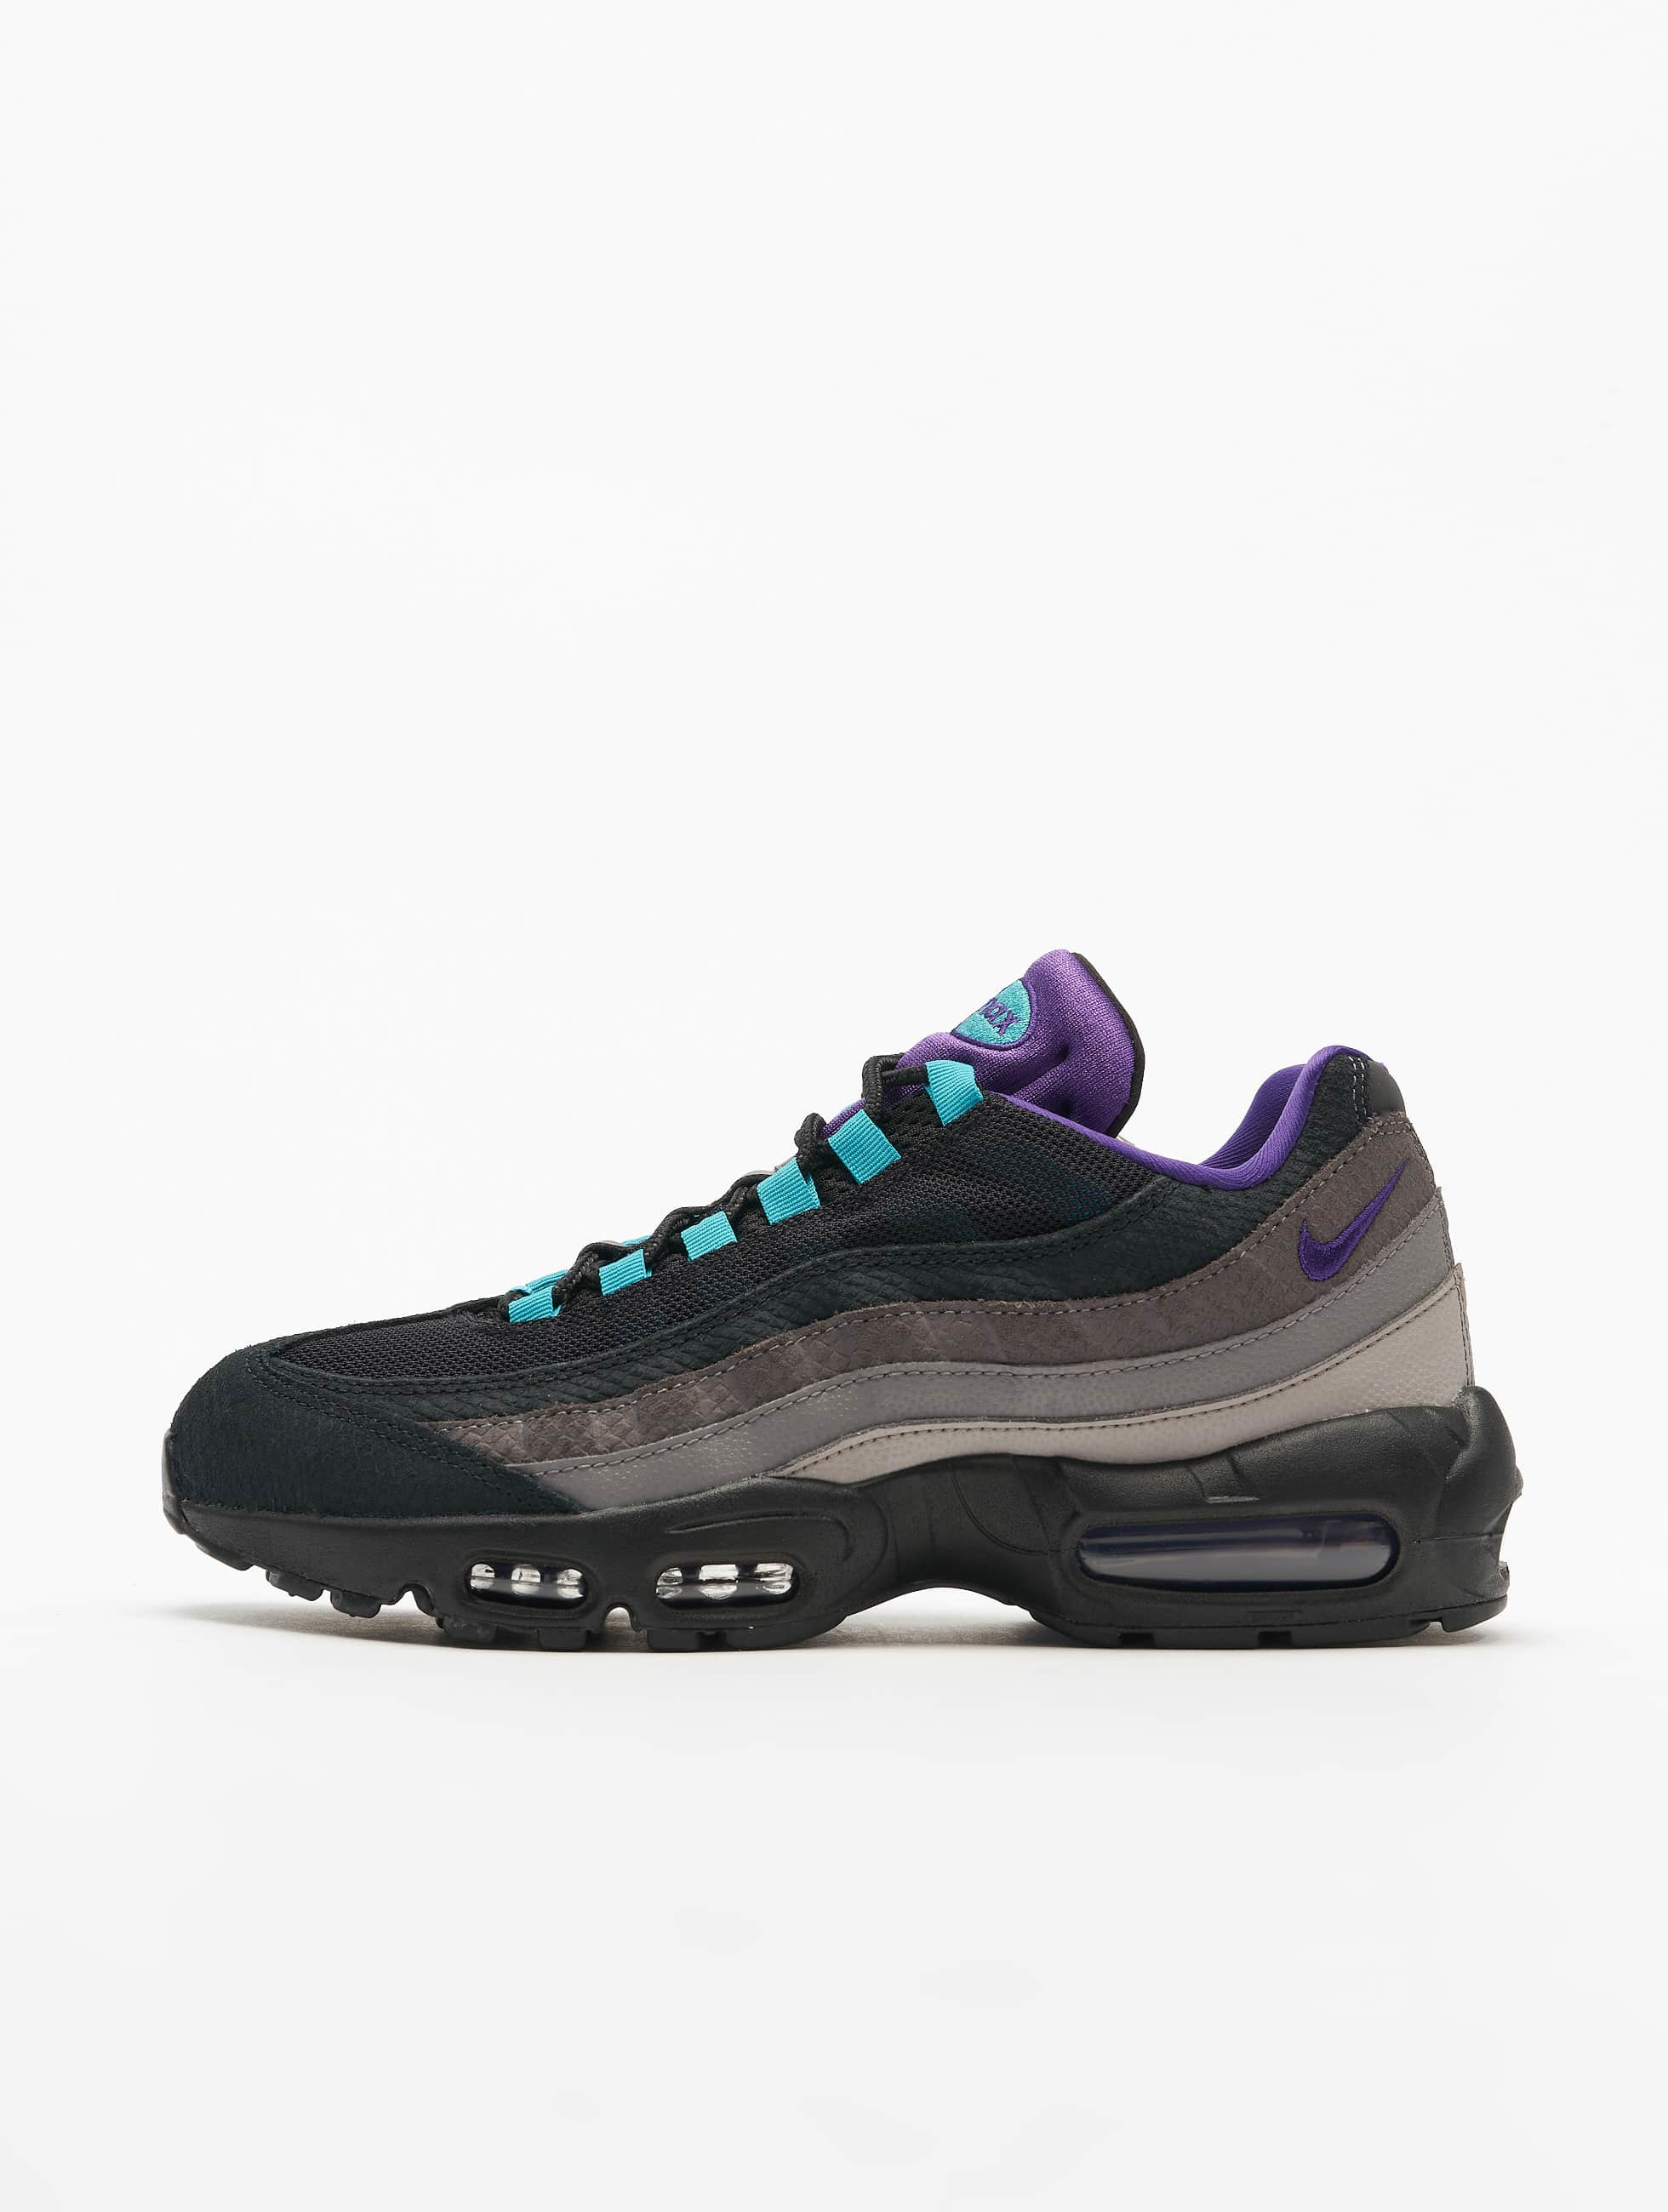 100% authentic wide range hot sale Nike Air Max 95 LV8 Sneakers Black/Court Purple/Teal Nebula